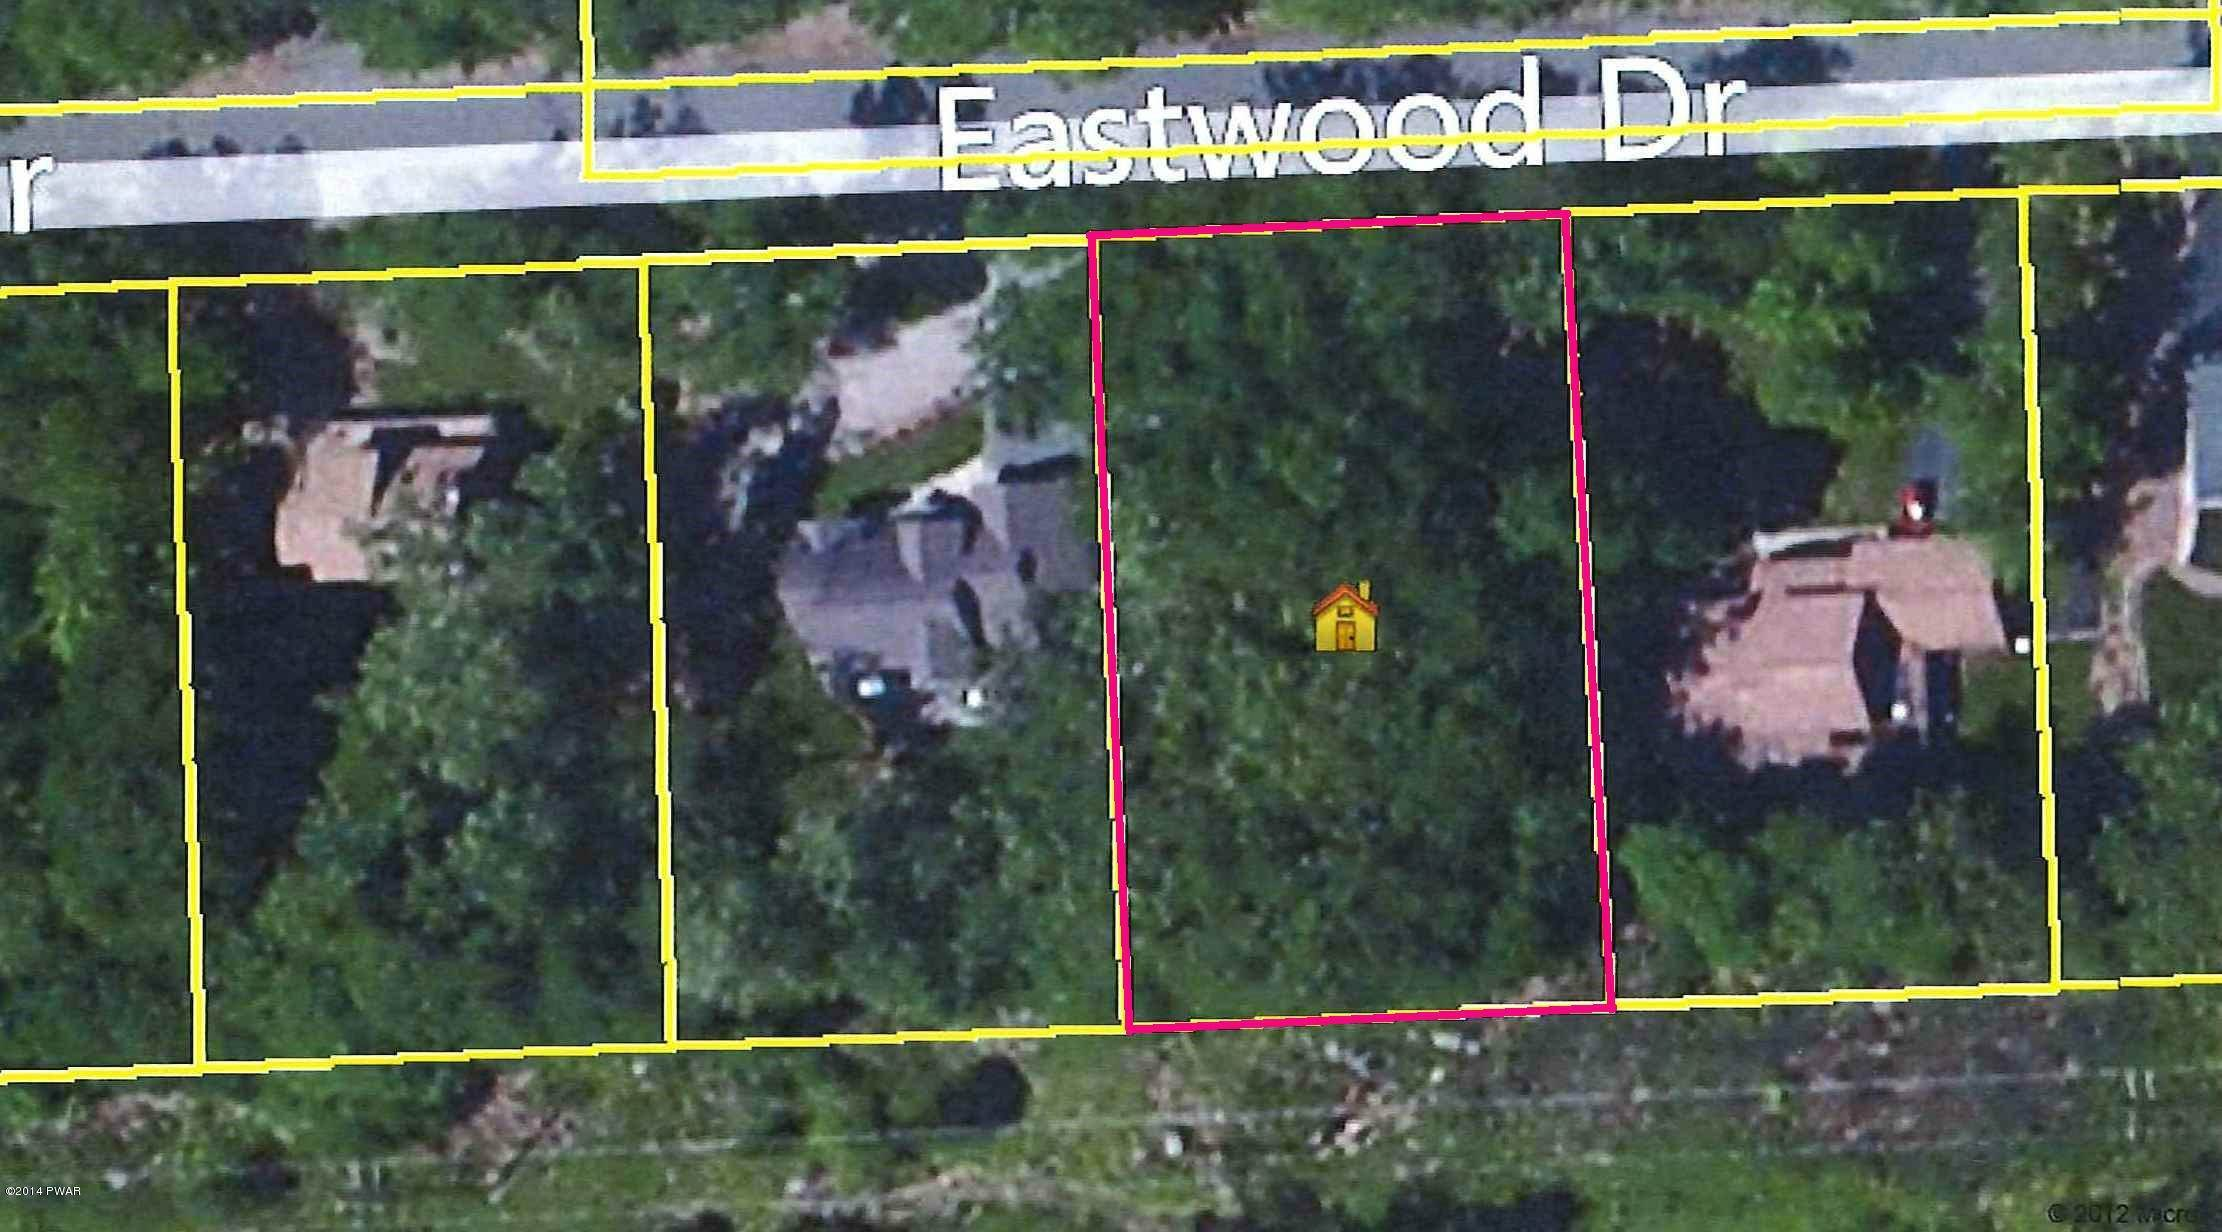 Land for Sale at 179 Eastwood Dr Greentown, Pennsylvania 18426 United States